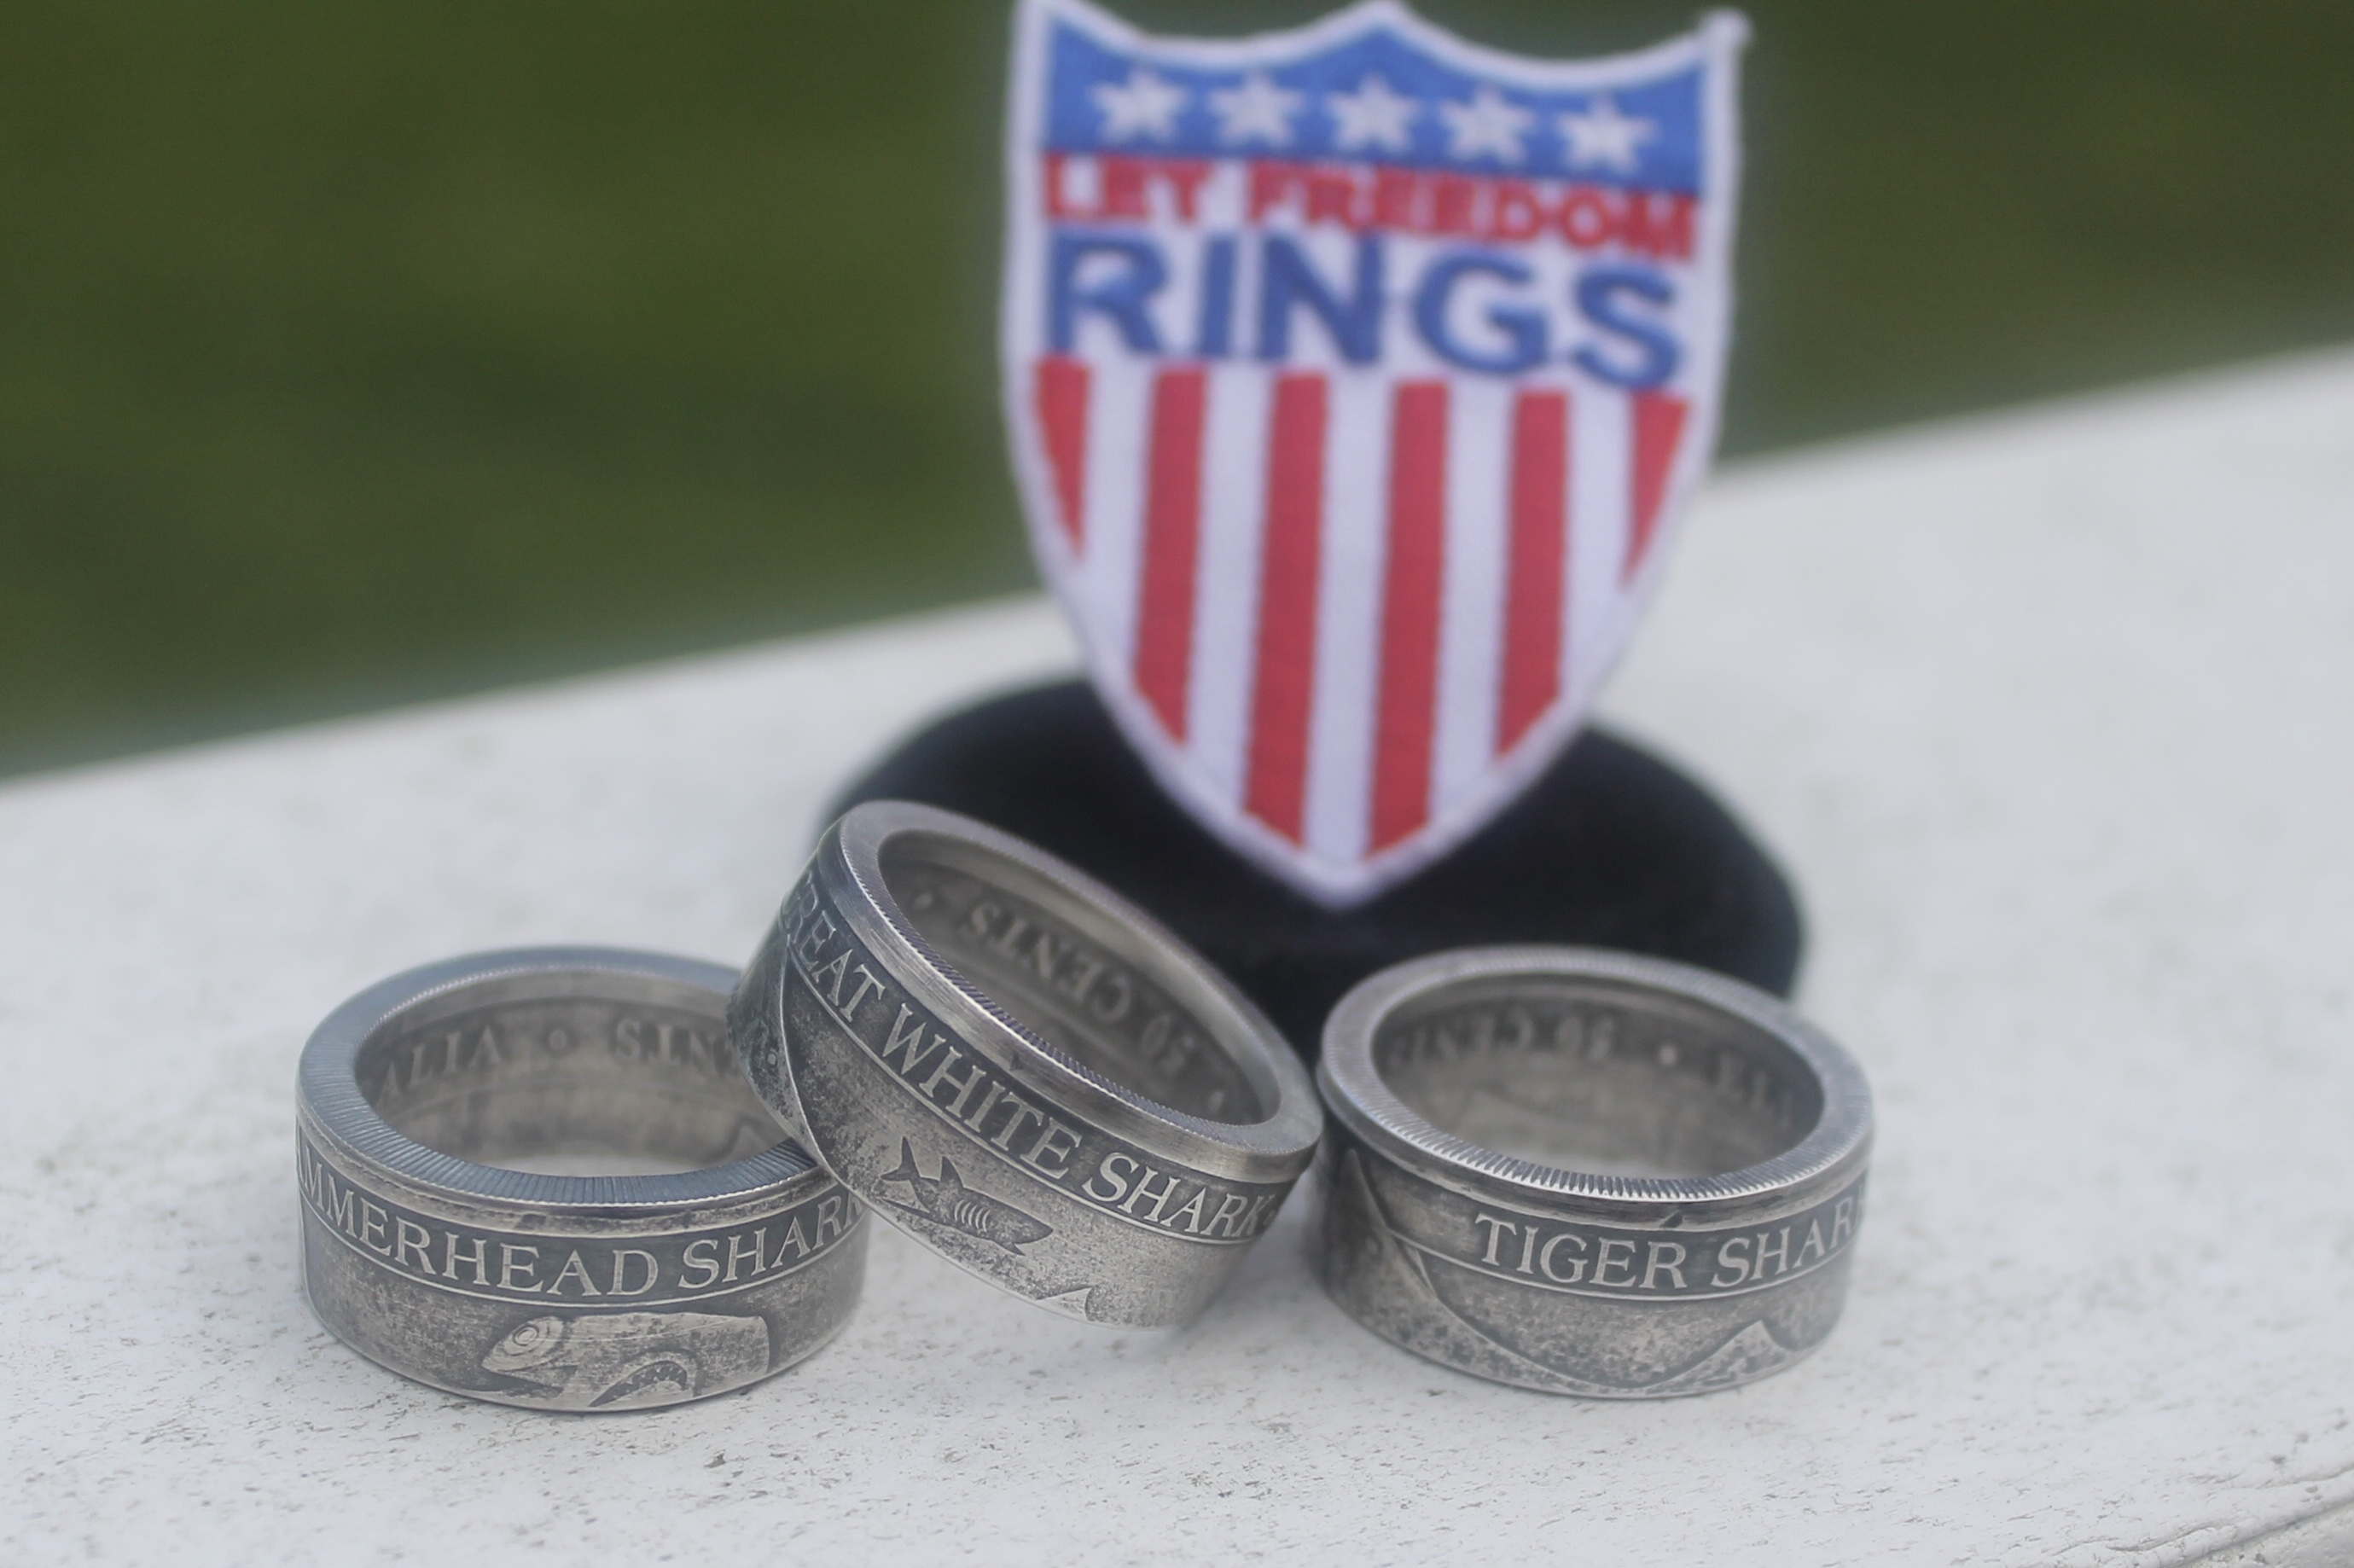 custom shark ring made from real coin let freedom coin rings